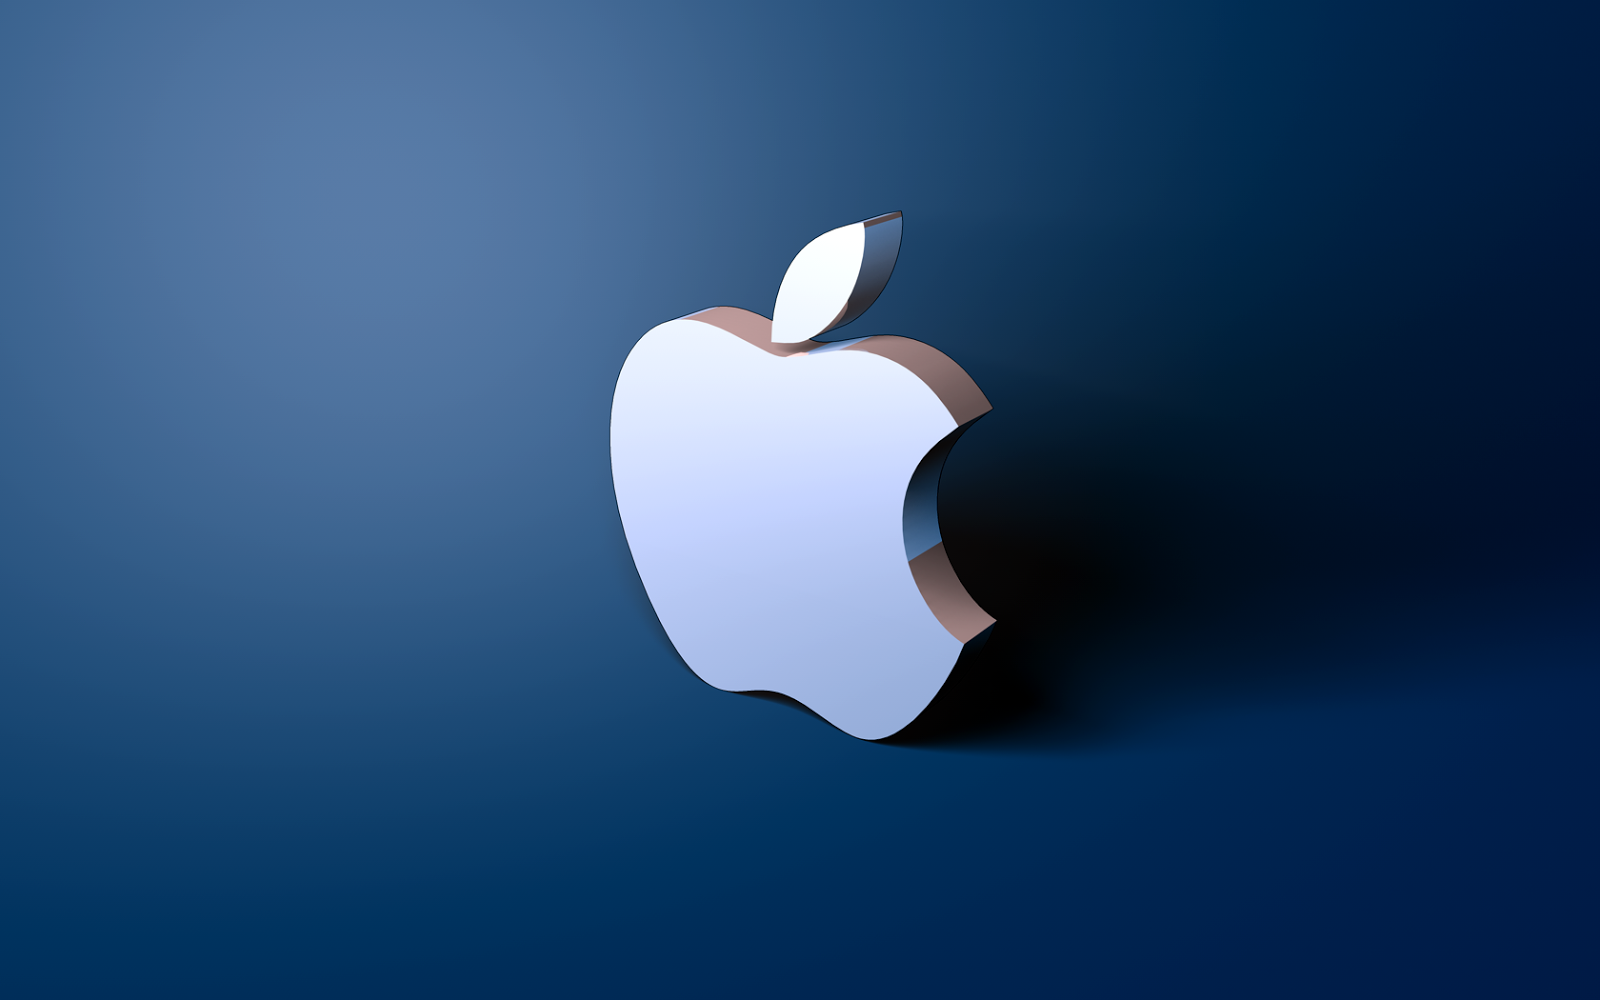 Hd Apple Wallpapers 1080p Wallpapersafari